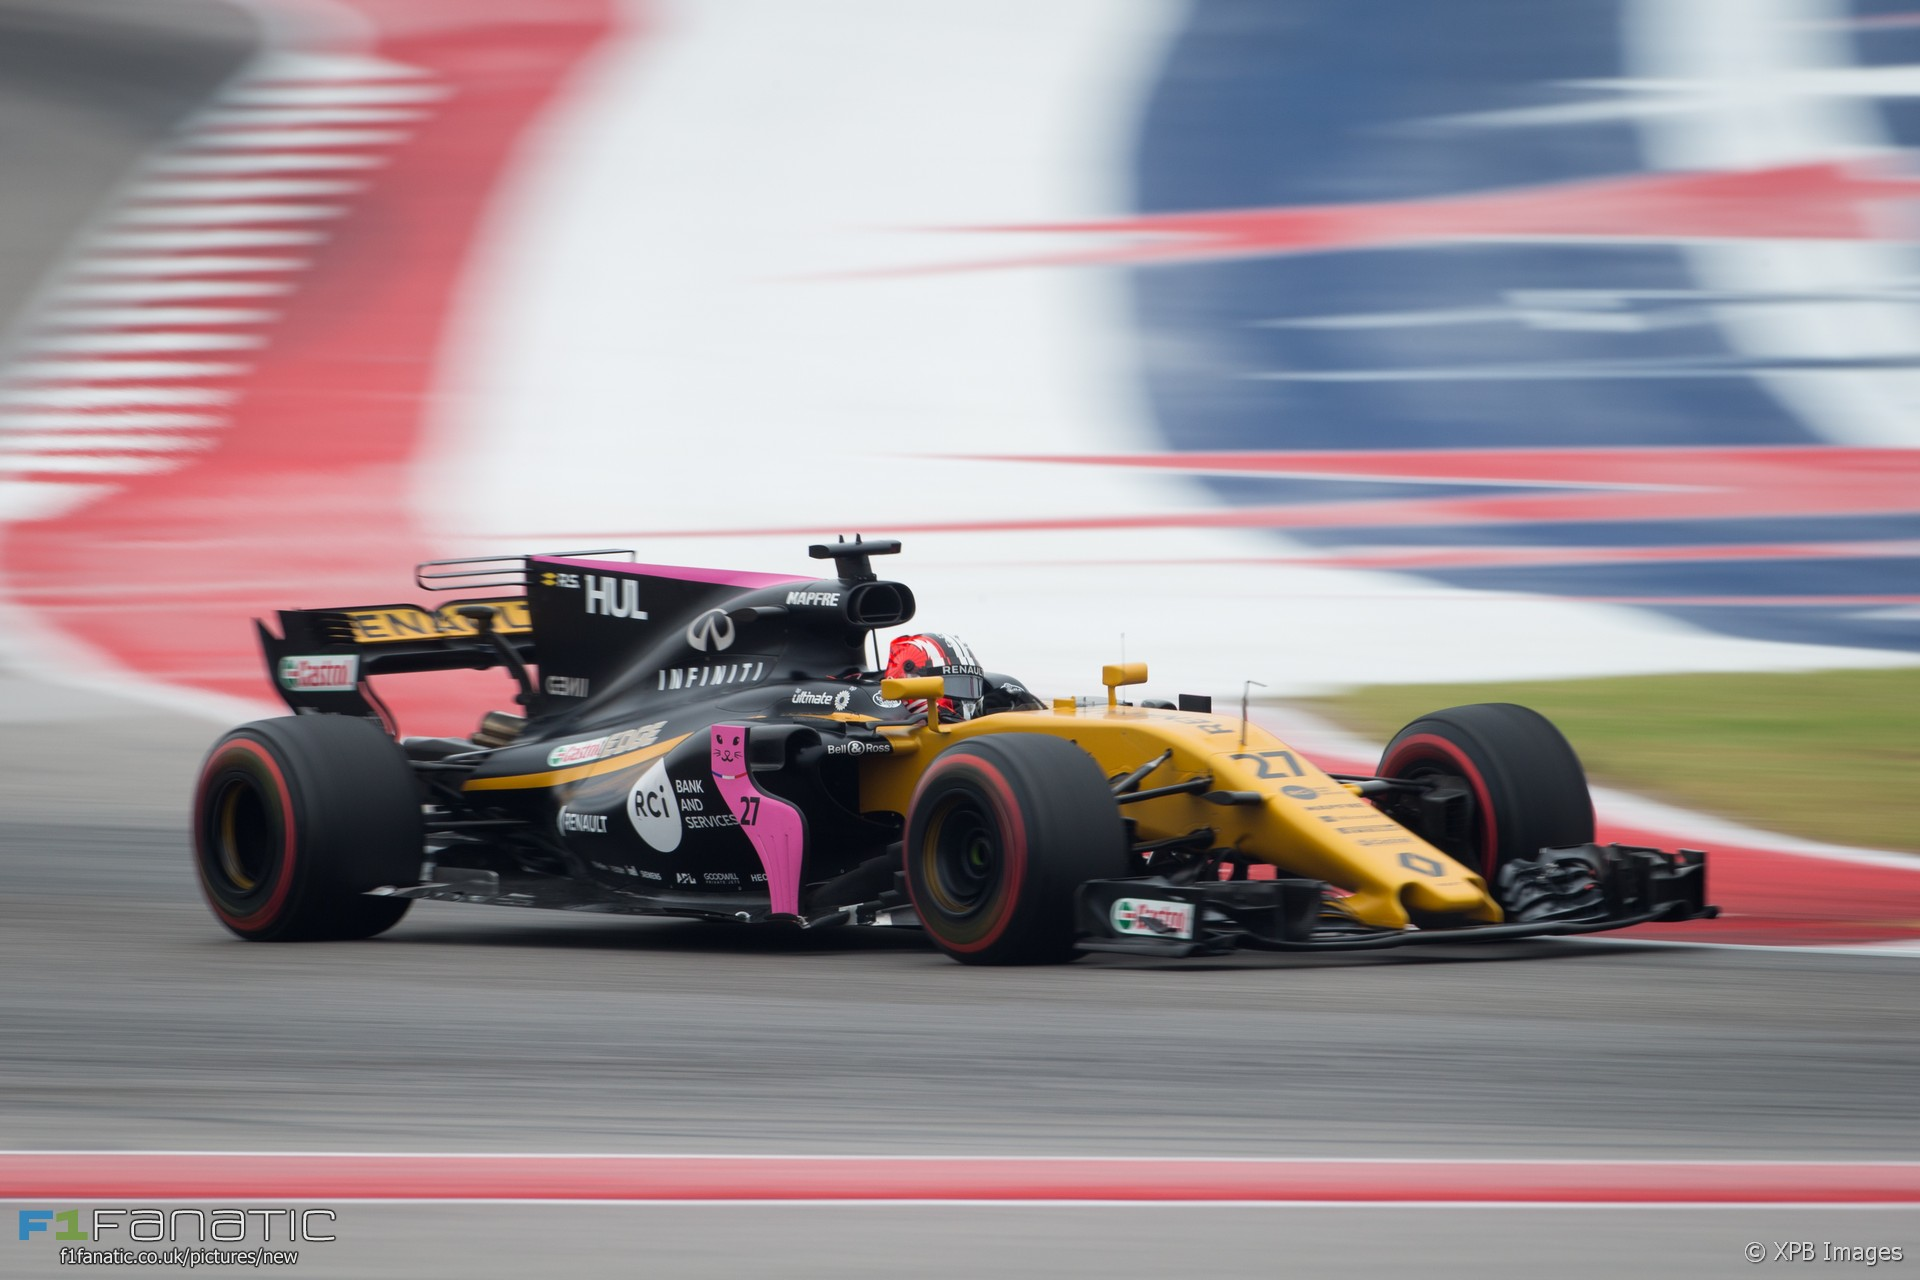 United States F1 Grand Prix 2017 Full Race Video | MotoGP 2017 Info, Video, Points Table